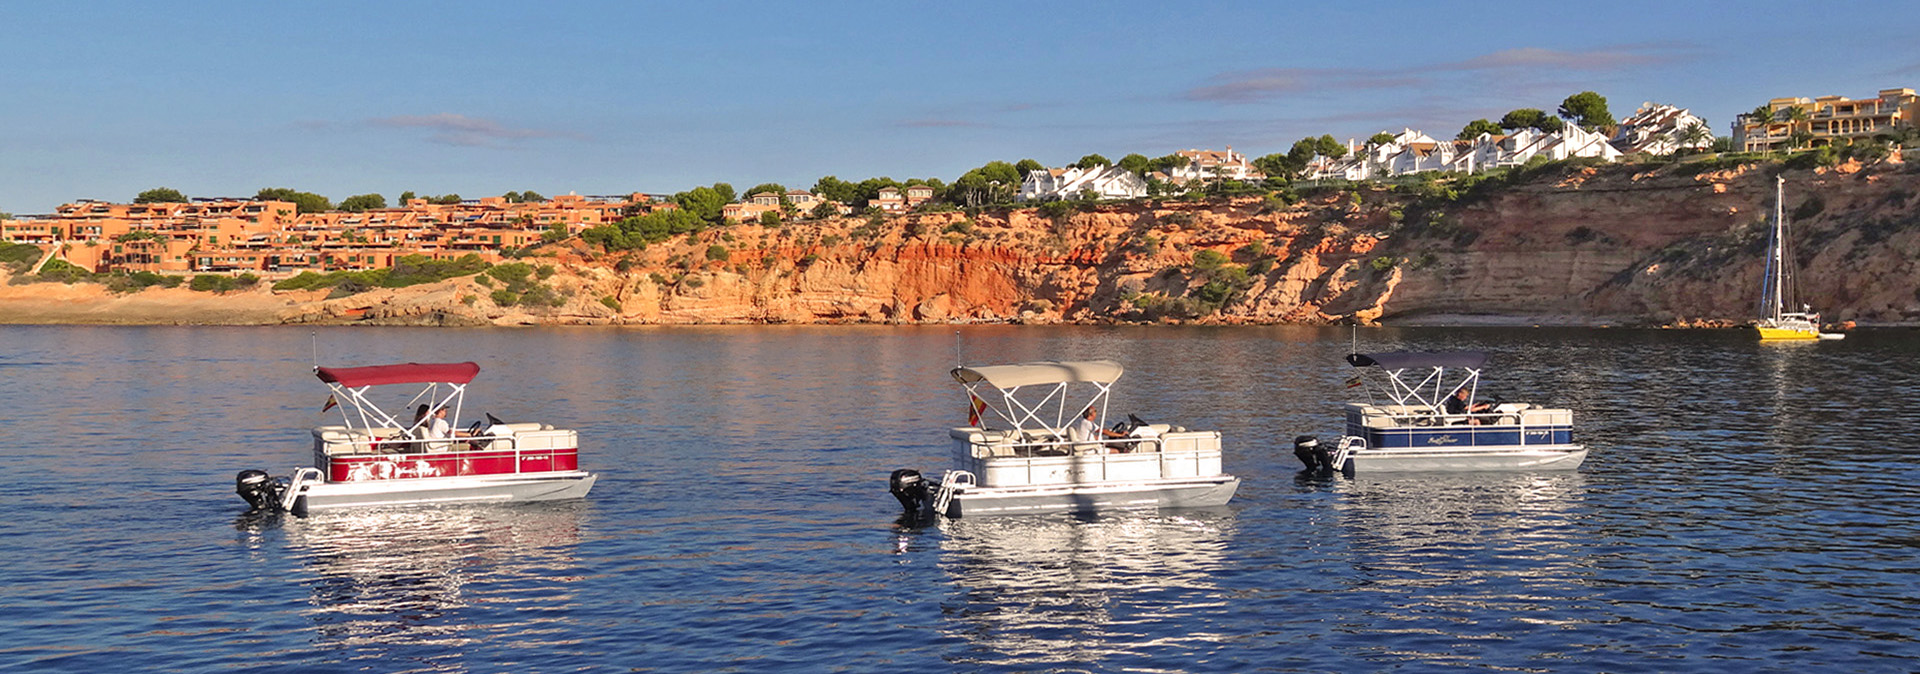 Licence_Free_Boat_Rental_Mallorca